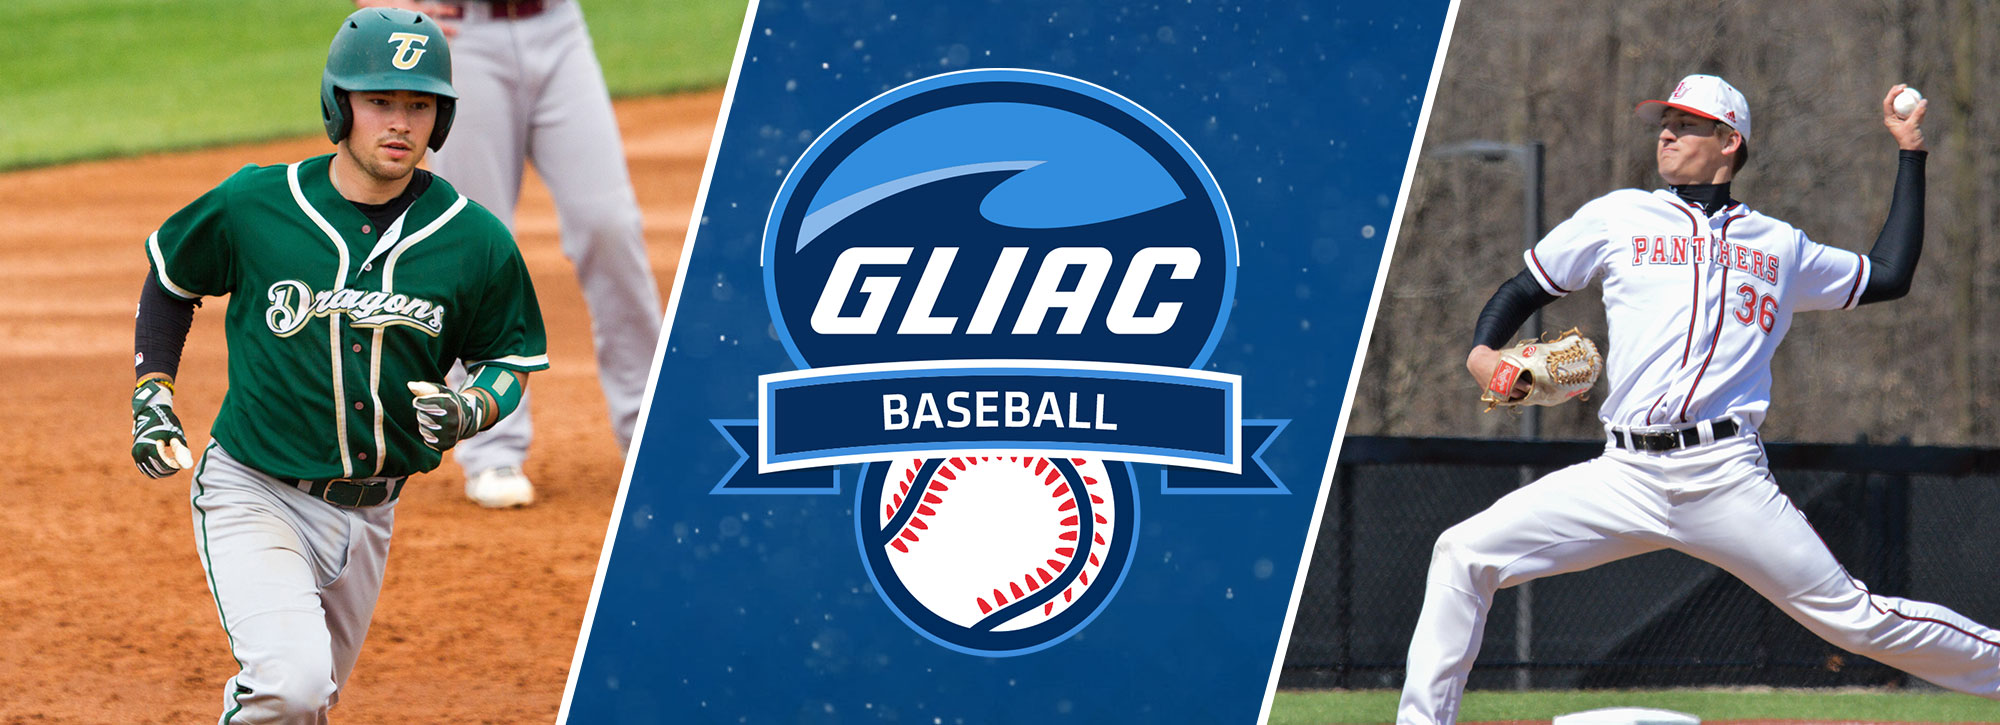 Tiffin's Heckman, Davenport's Wolfram Capture GLIAC Baseball Players of the Week Awards